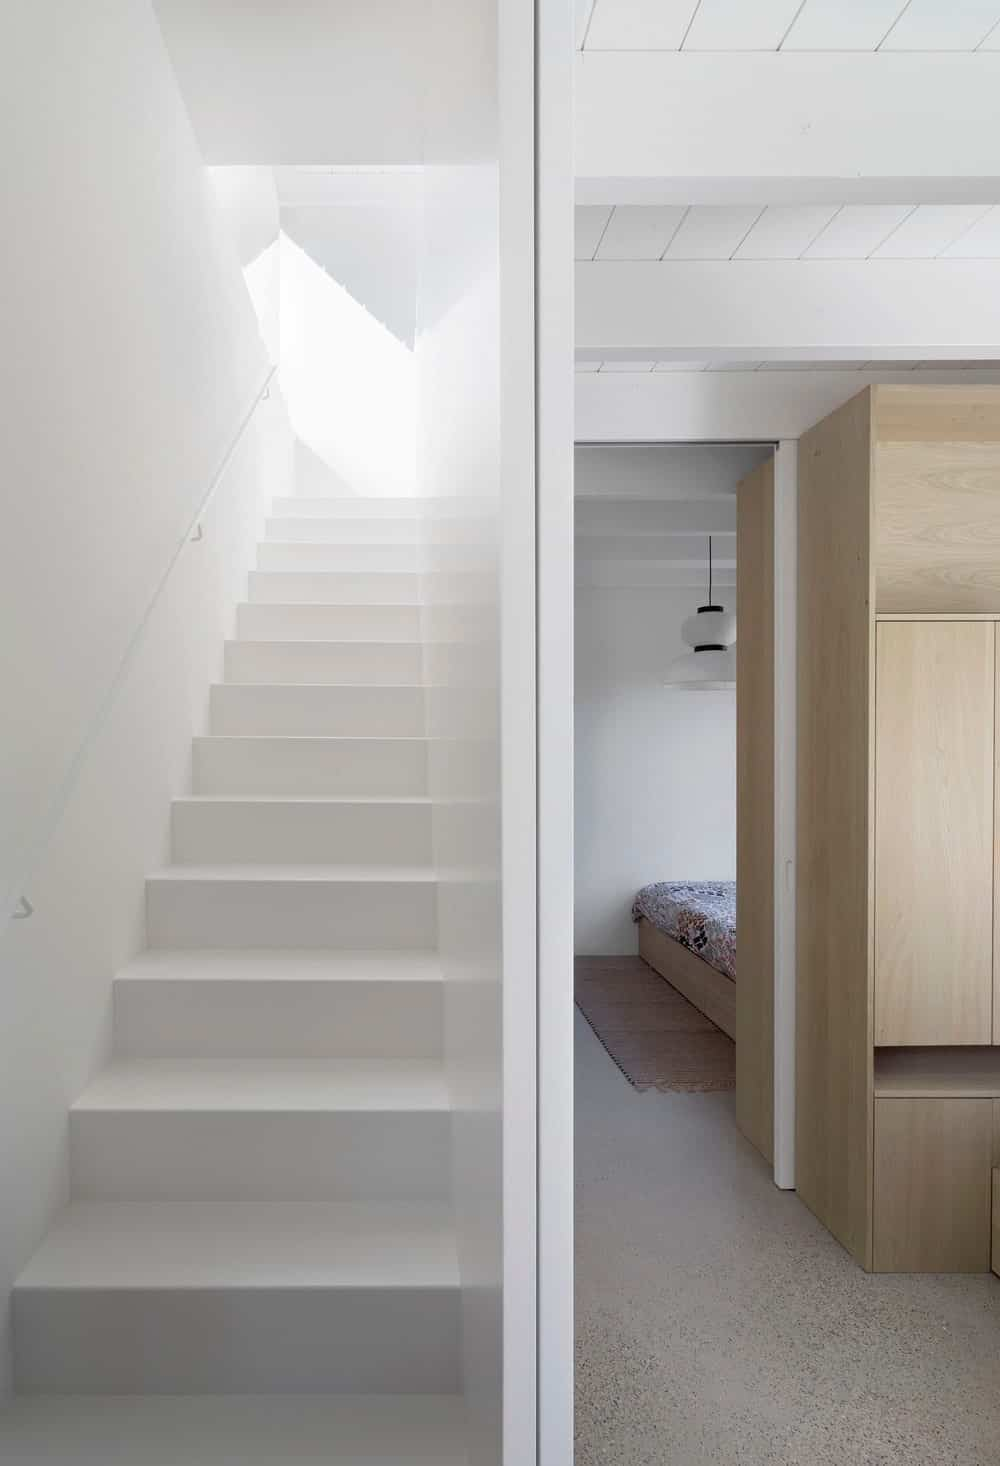 An all-white staircase with a thin metal handrail that's very easy in the eyes. You won't even notice its narrowness and sleekness.